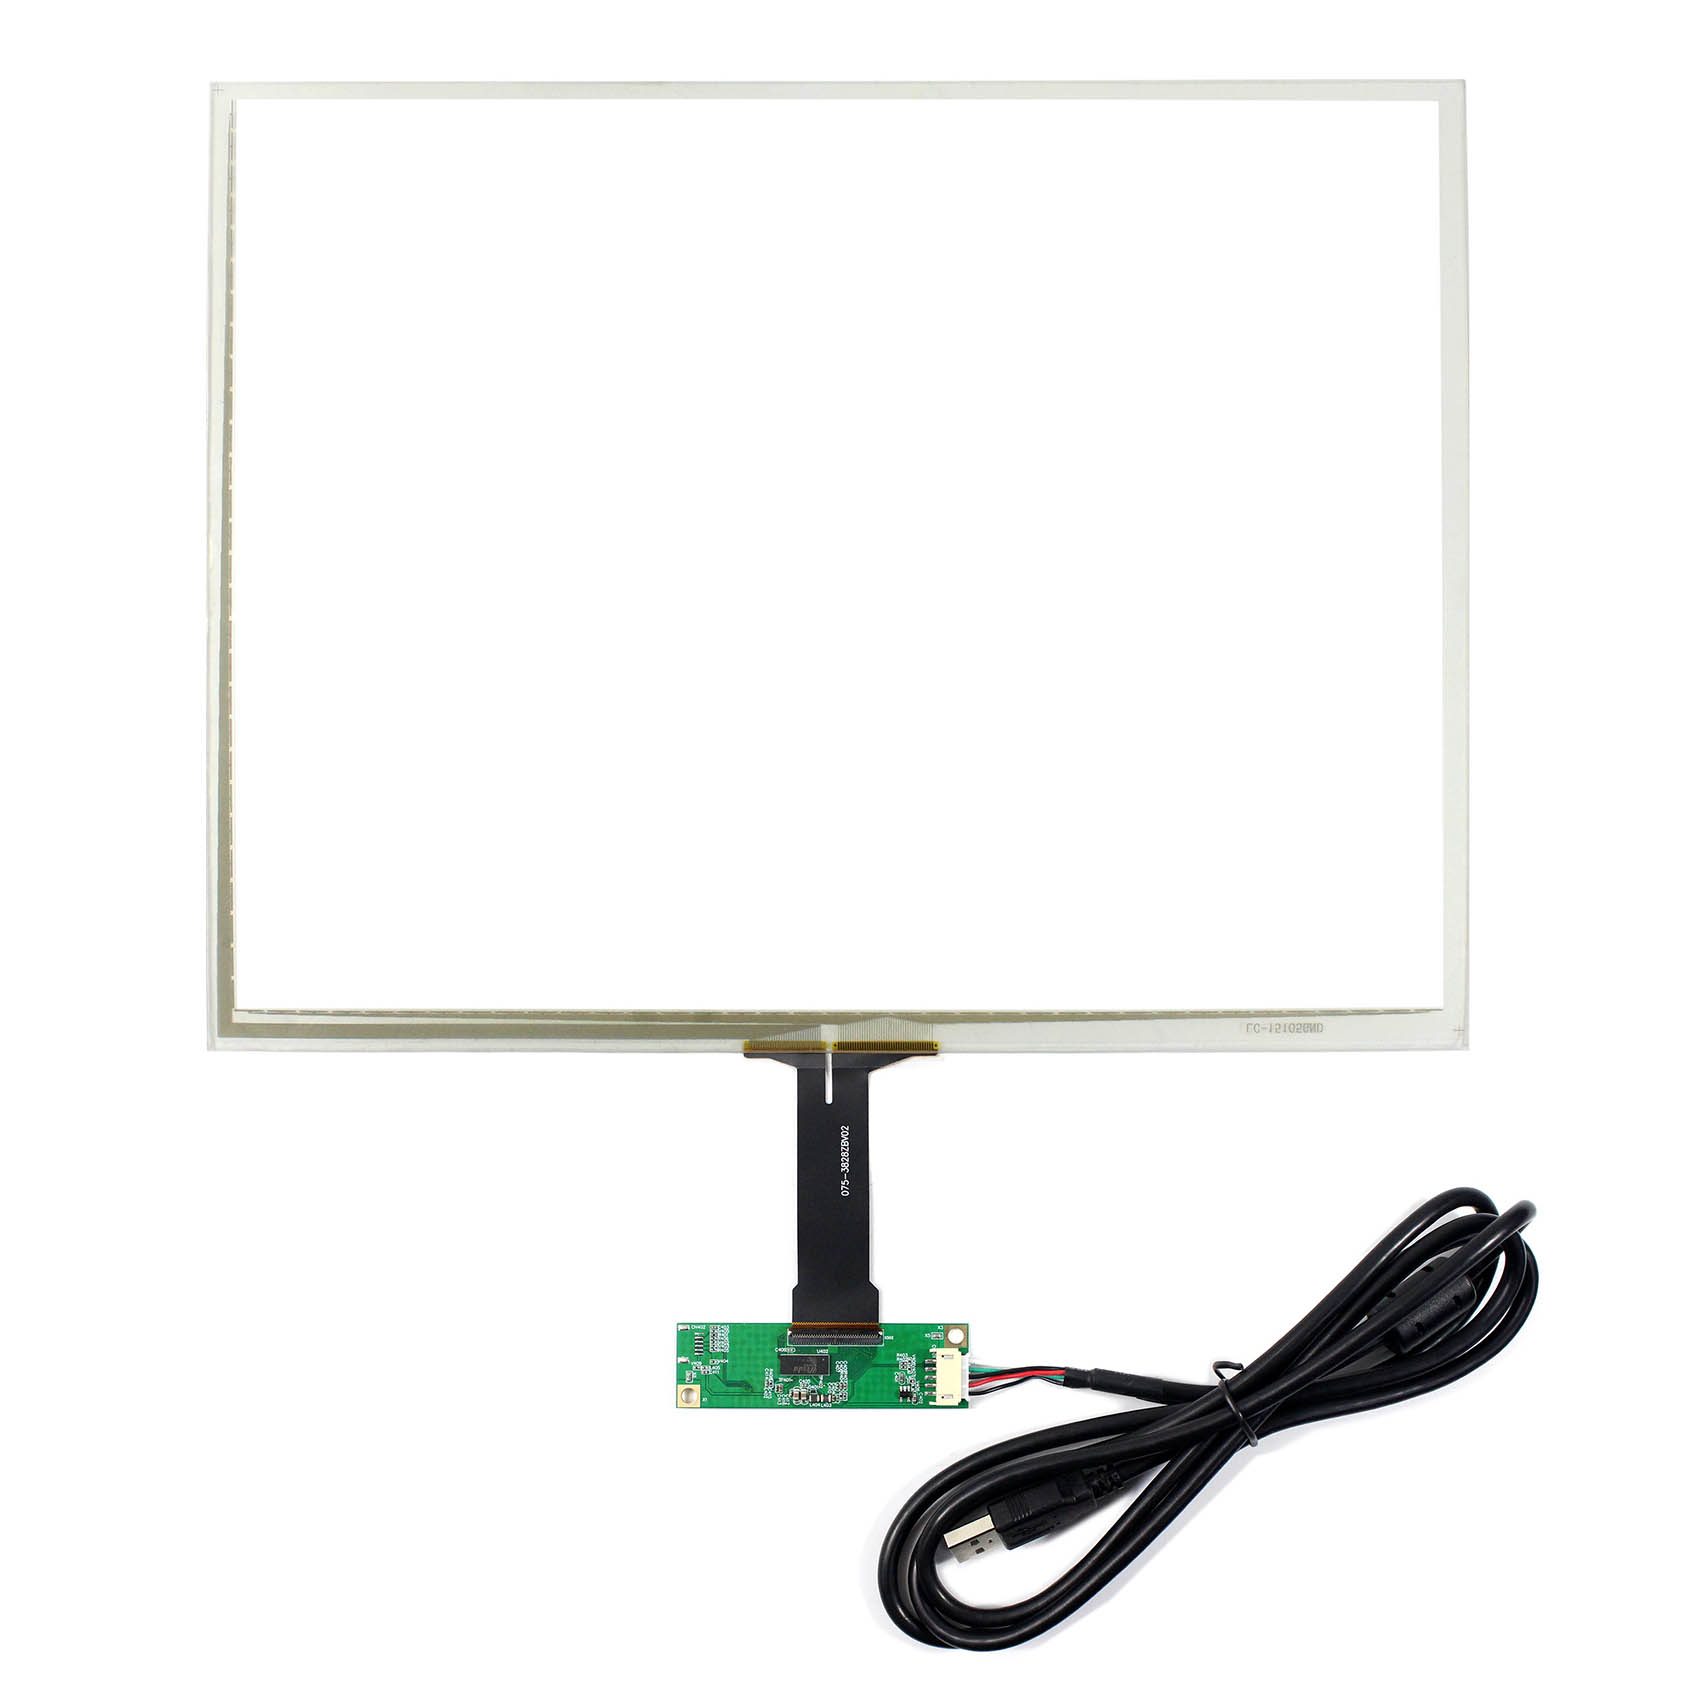 15.1 Capacitive Touch Panel 15inch Compatible With 15inch 1024x768 1400x1050 4:3 LCD Screen  15.1 Capacitive Touch Panel 15inch Compatible With 15inch 1024x768 1400x1050 4:3 LCD Screen